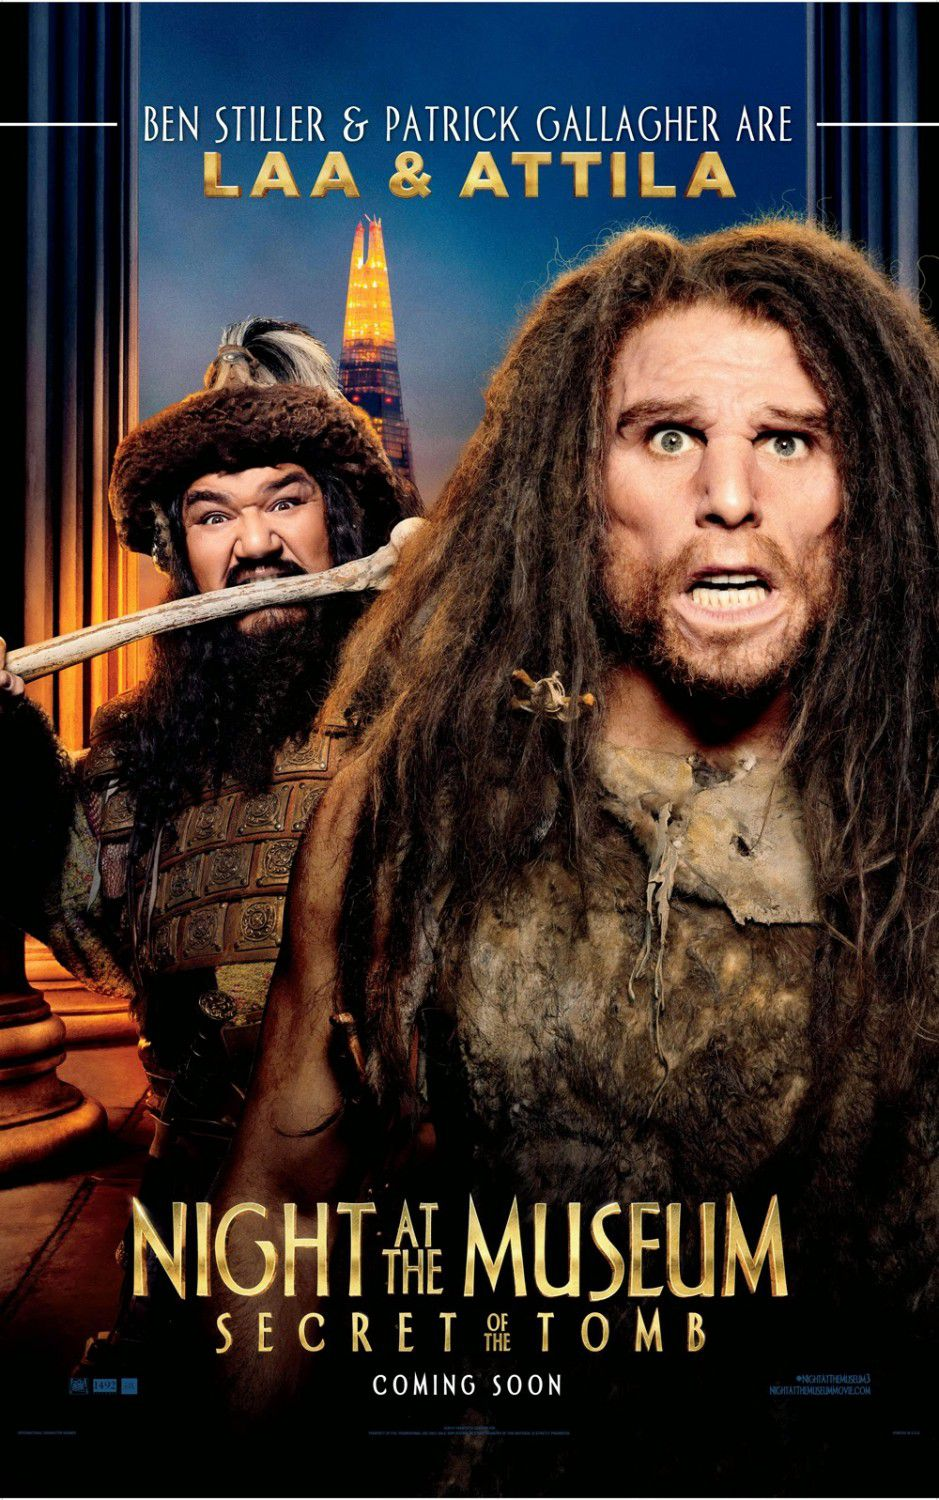 Una Notte al Museo 3 - Night at the Museum 3 - Secret of the Tomb - poster - Laa (Ben Stiller) and Attila (Patrick Gallagher)